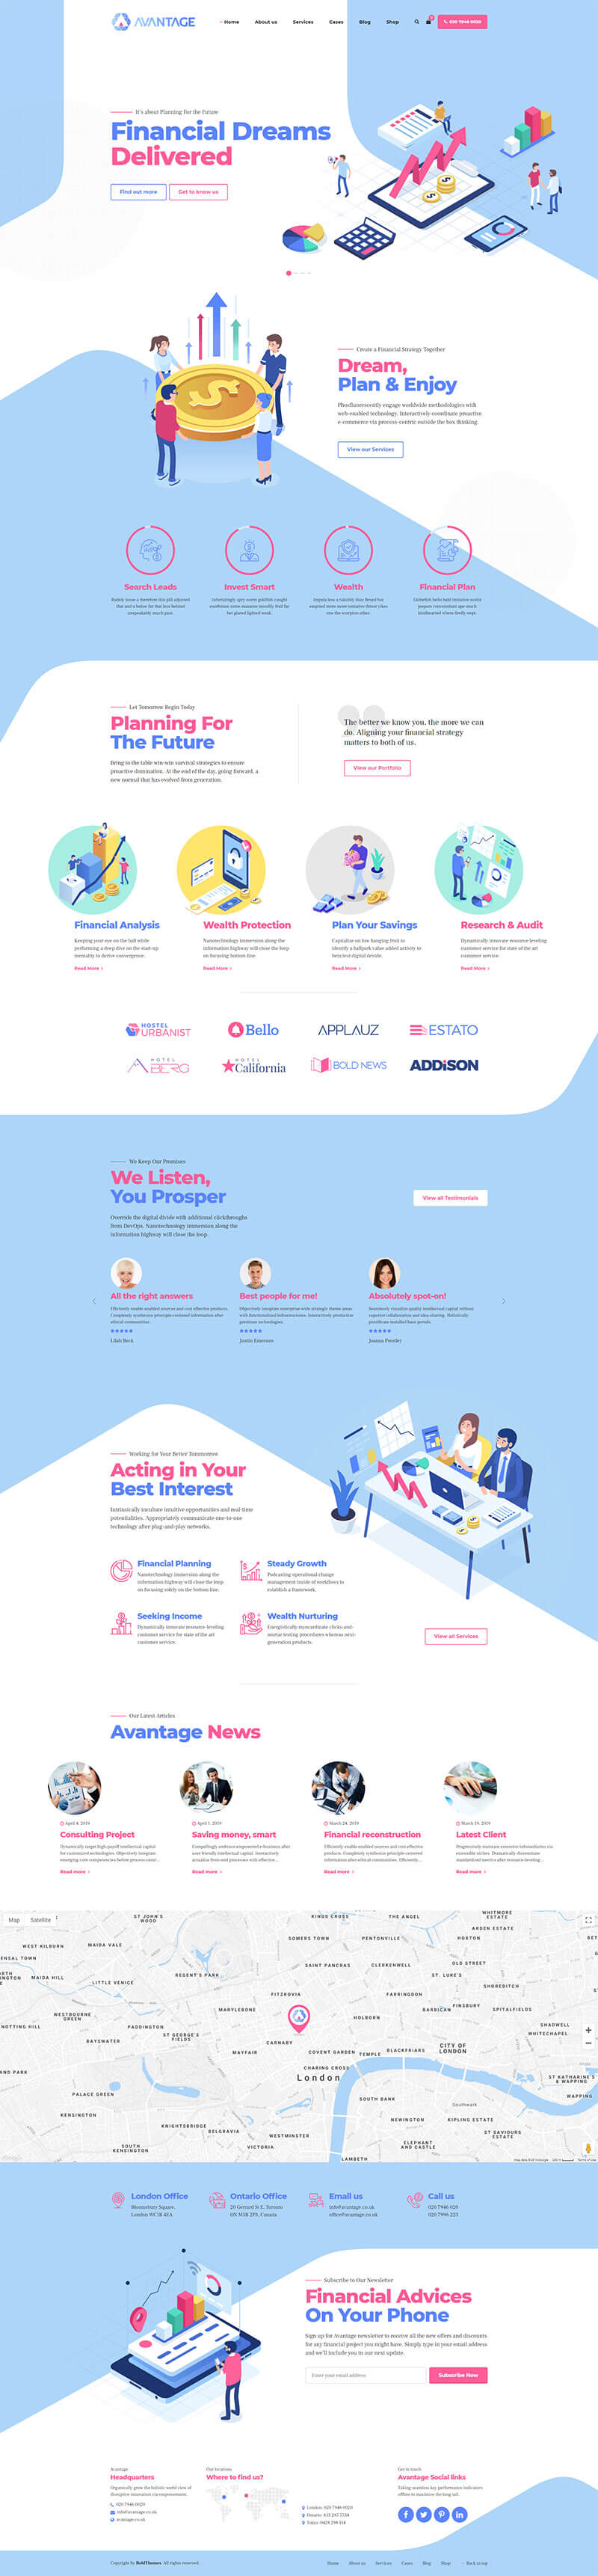 http://avantage.bold-themes.com/wp-content/uploads/2019/05/demo-04-financial.jpg